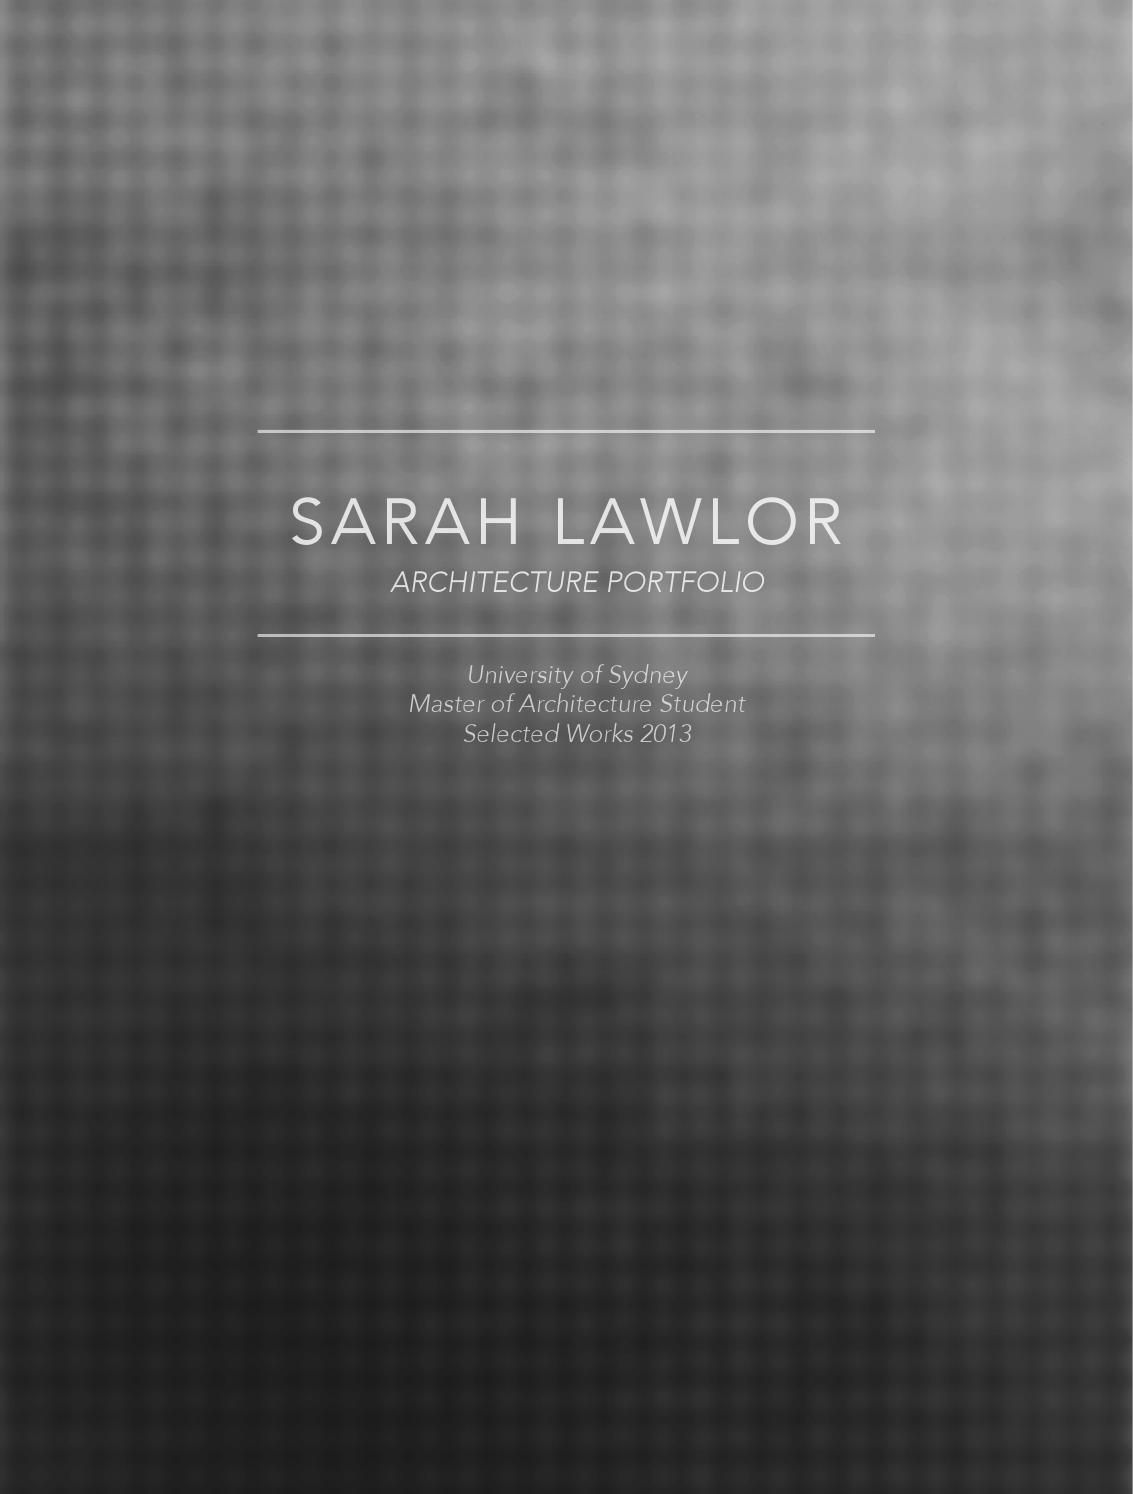 sarah lawlor architecture portfolio university of sydney 渐变 抽象 sarah lawlor architecture portfolio a selection of my 2013 student projects while studying for a master of architecture at the university of